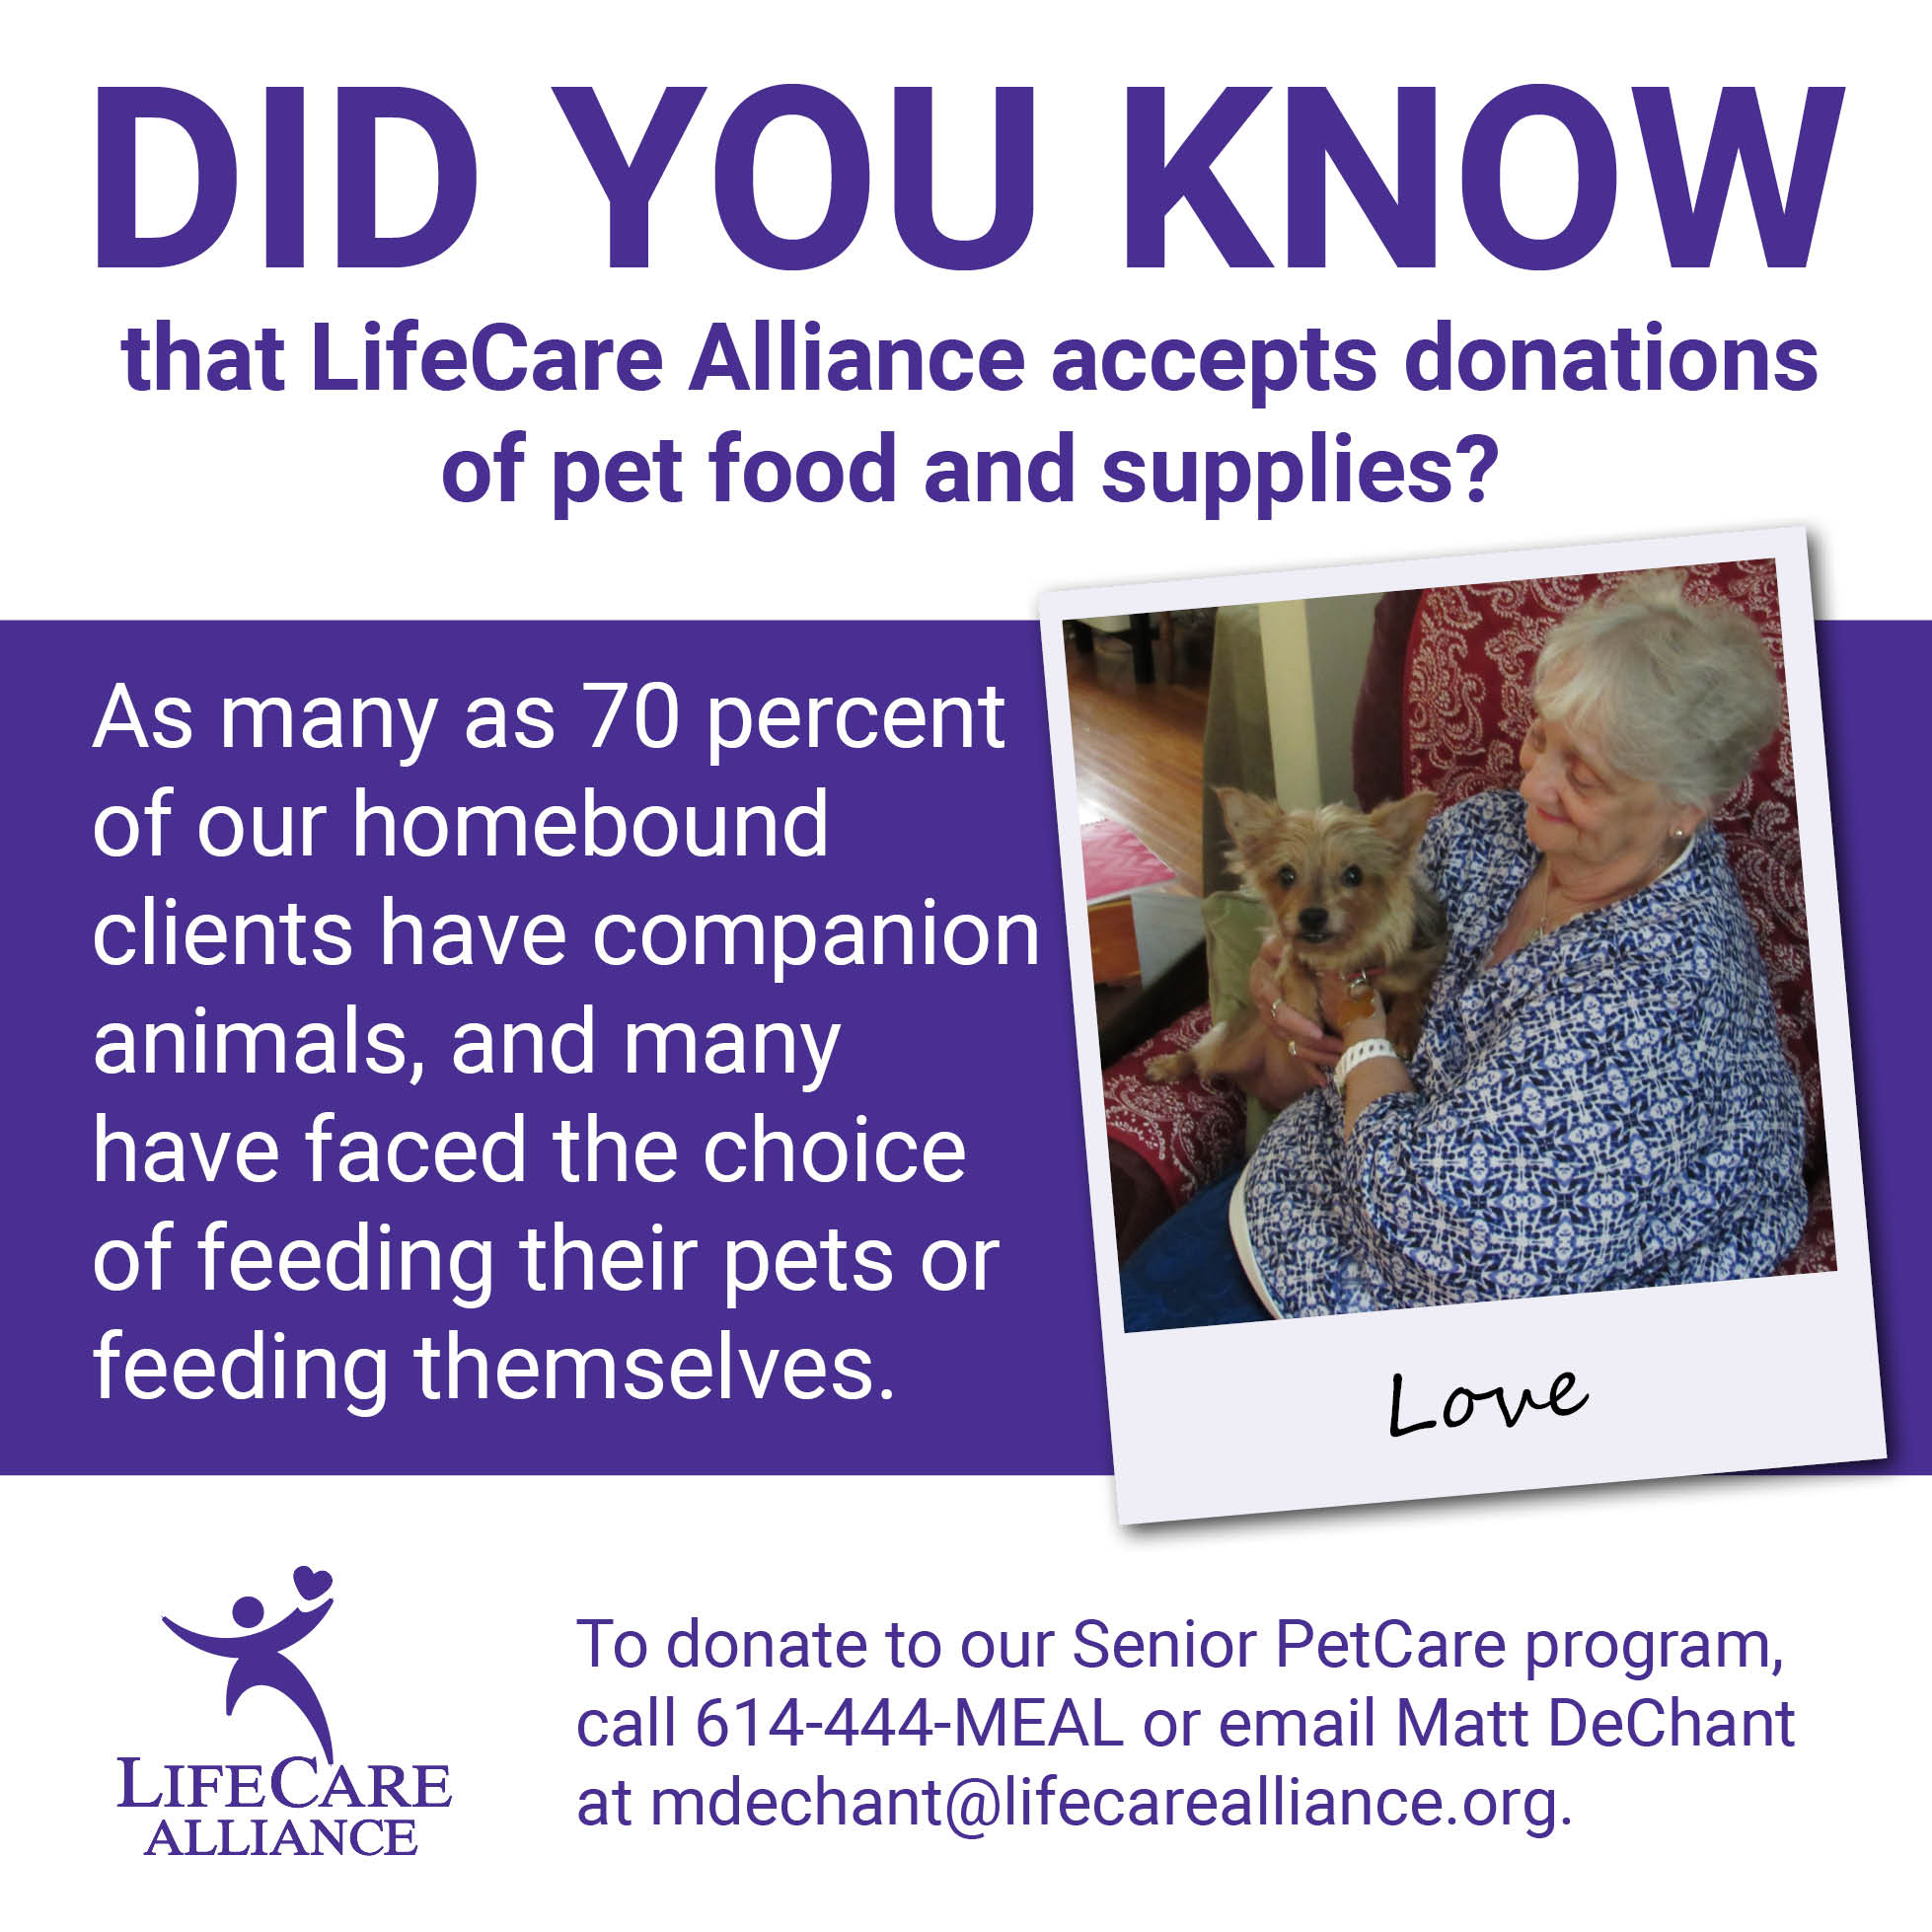 As many as 70 percent of our homebound clients have companion animals.